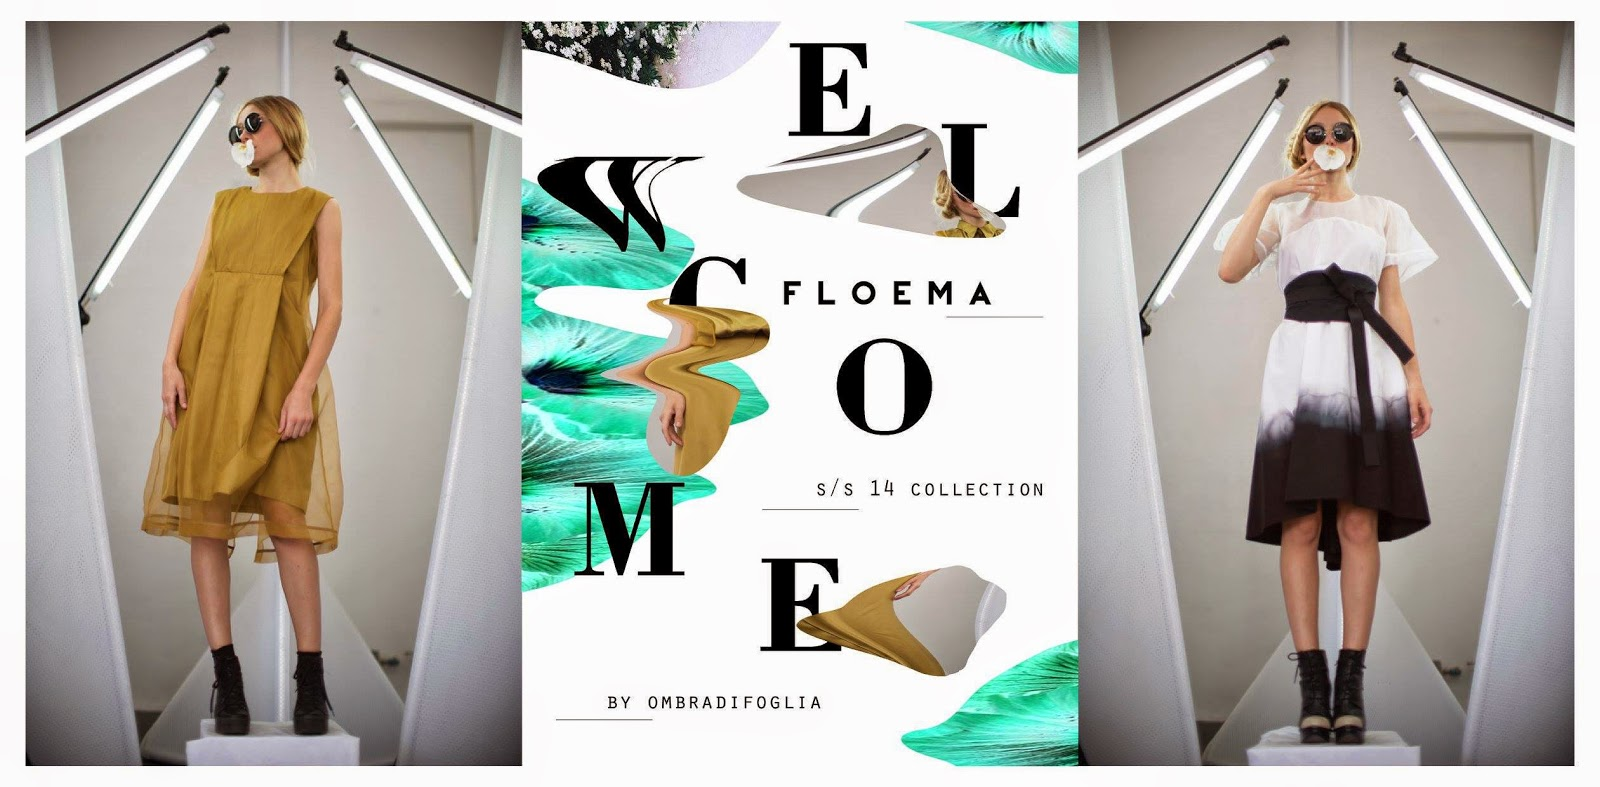 floema, elena pignata, new collection ombradifoglia